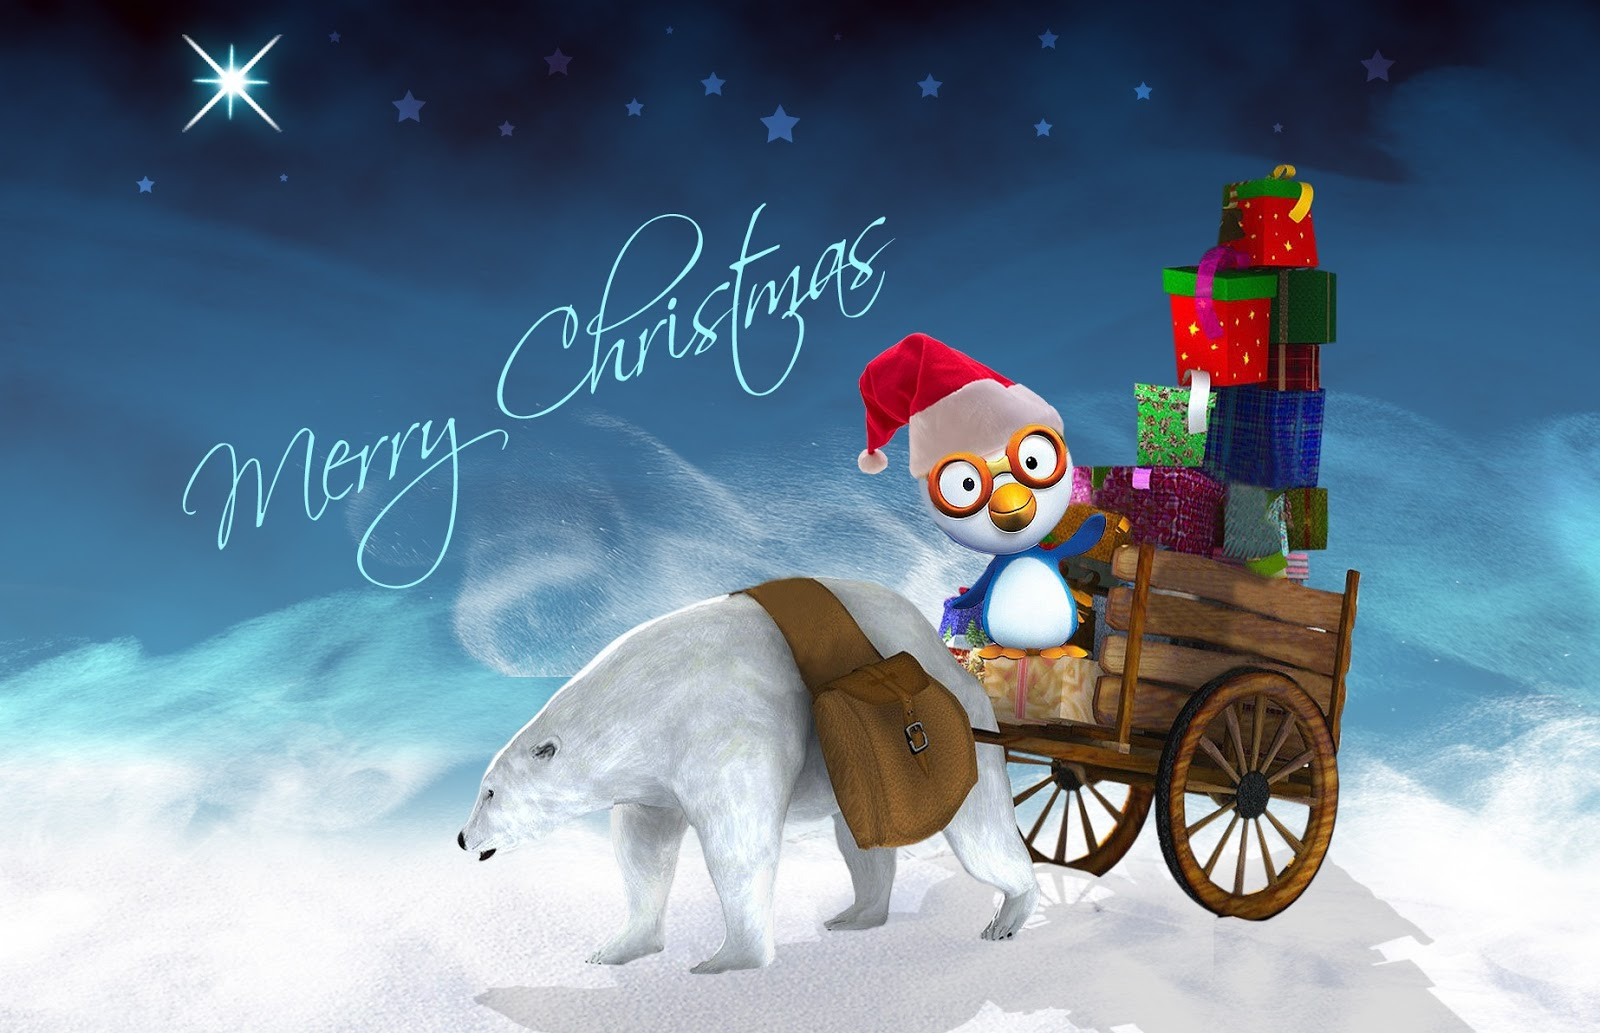 Christmas Hd Wallpapers 2014 New Christmas Greetings Hd Wallpaper